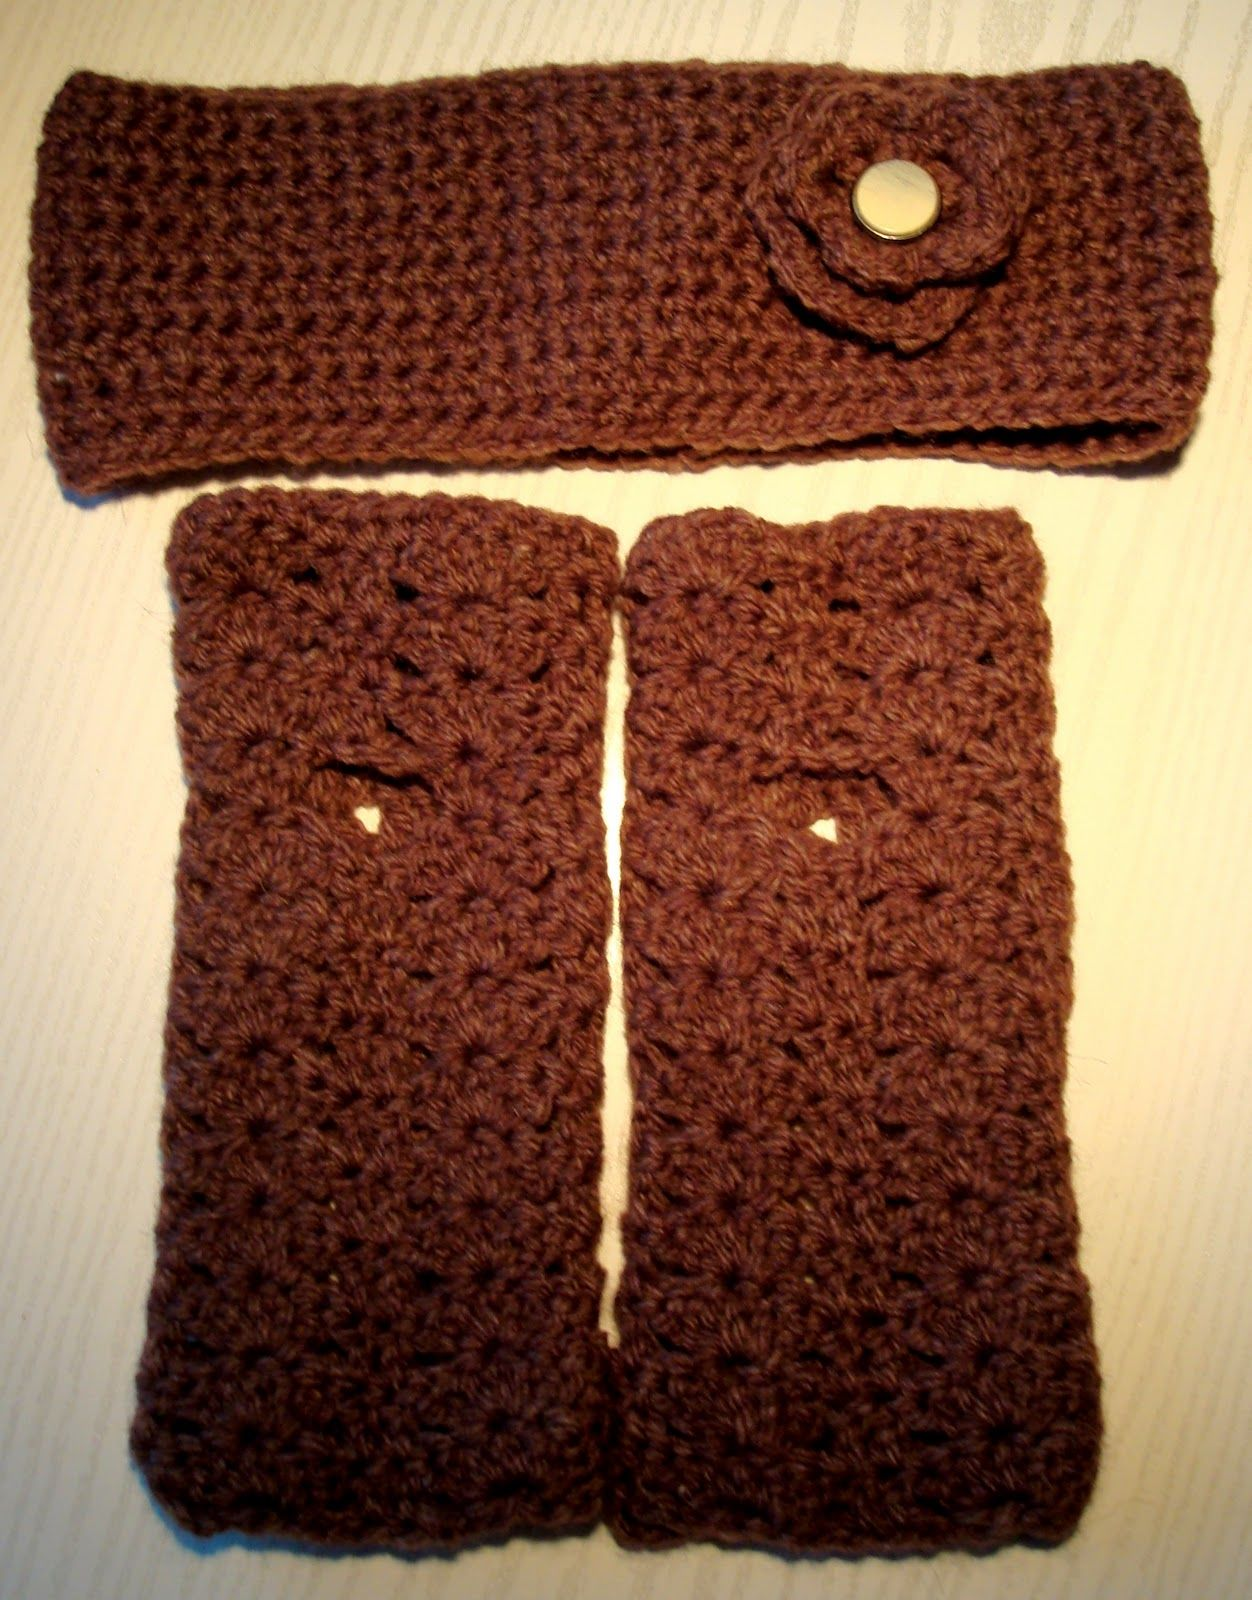 Crochet fingerless gloves and earwarmers